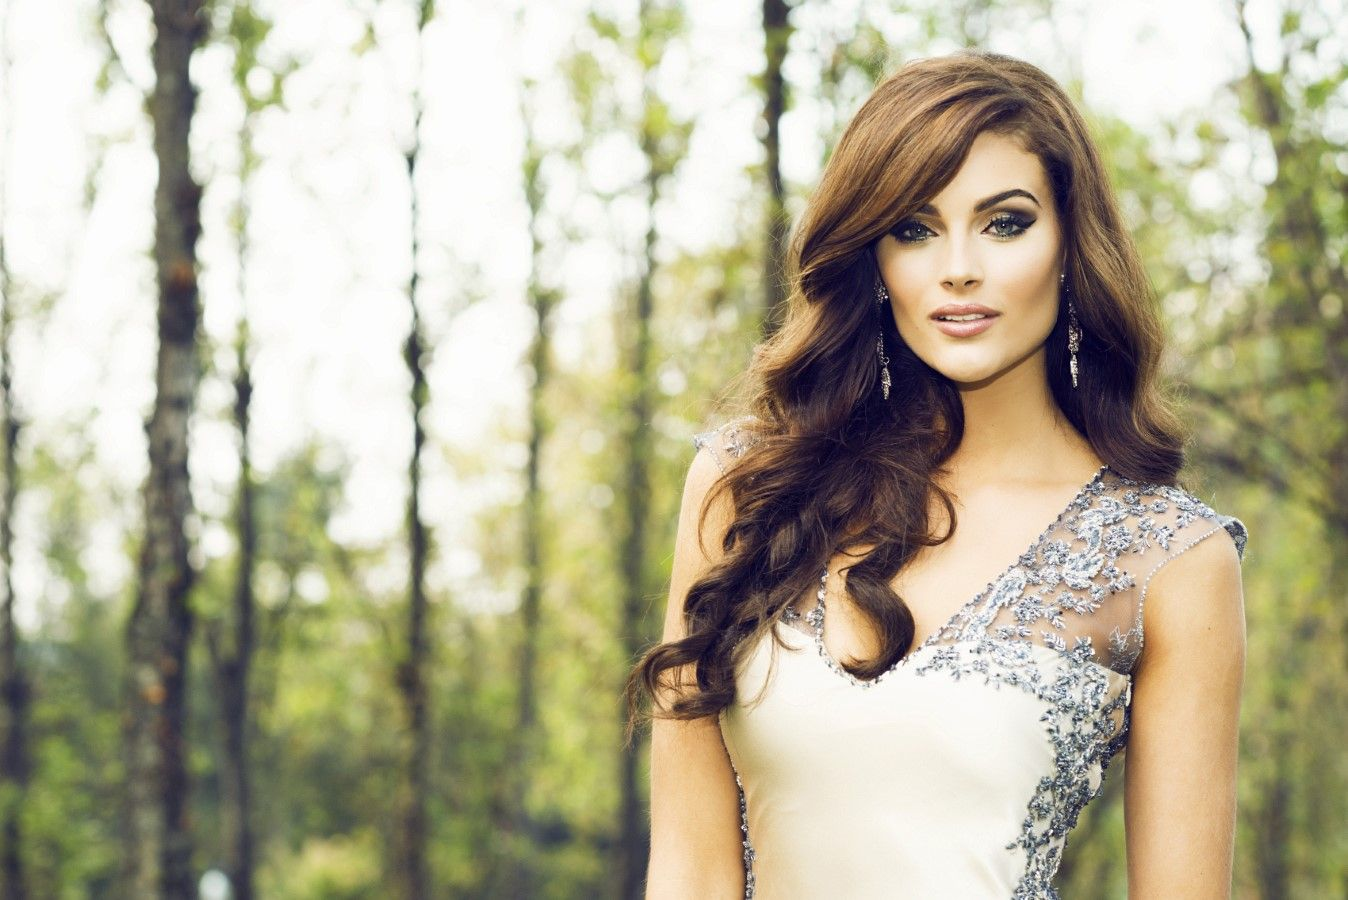 Rolene Strauss, TV Host, Model And Miss World 2014 - http://africanluxurymag.com/rolene-strauss-tv-host-model-and-miss-world-2014/